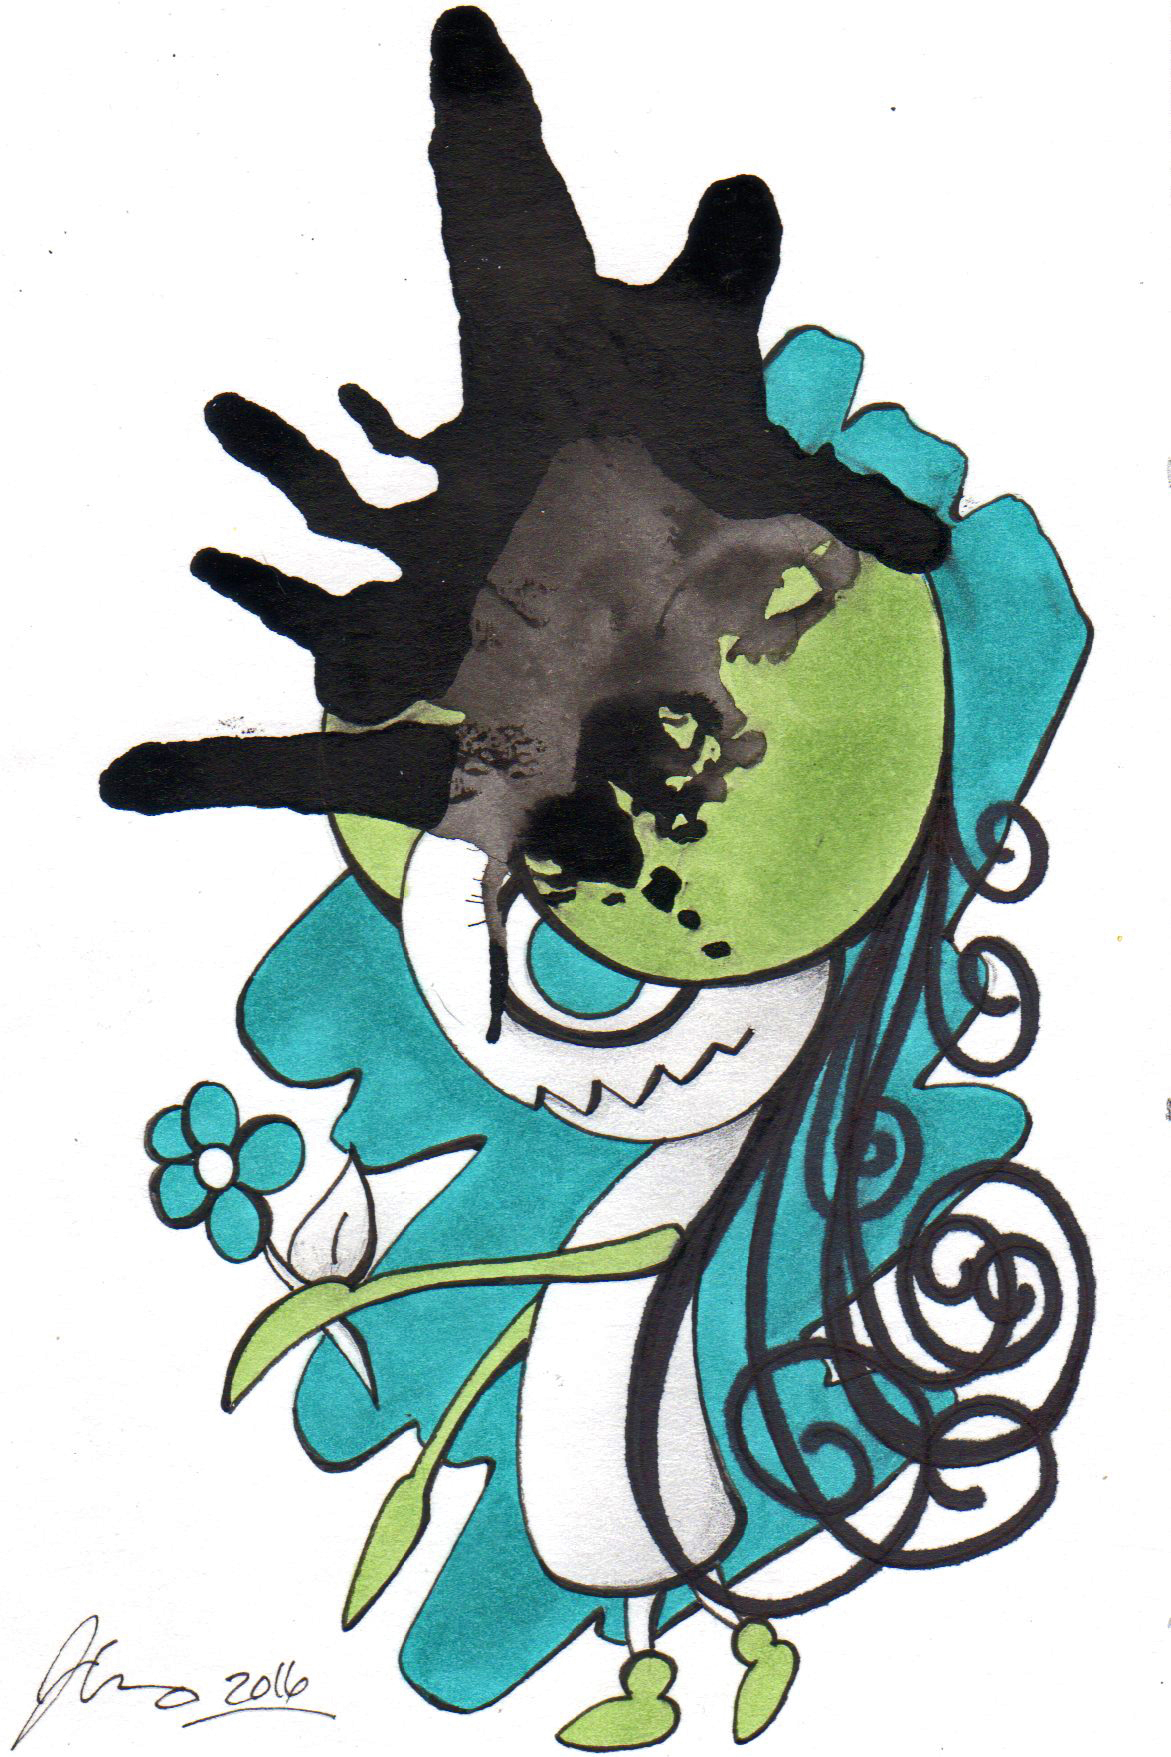 Ink Blot Monster #10